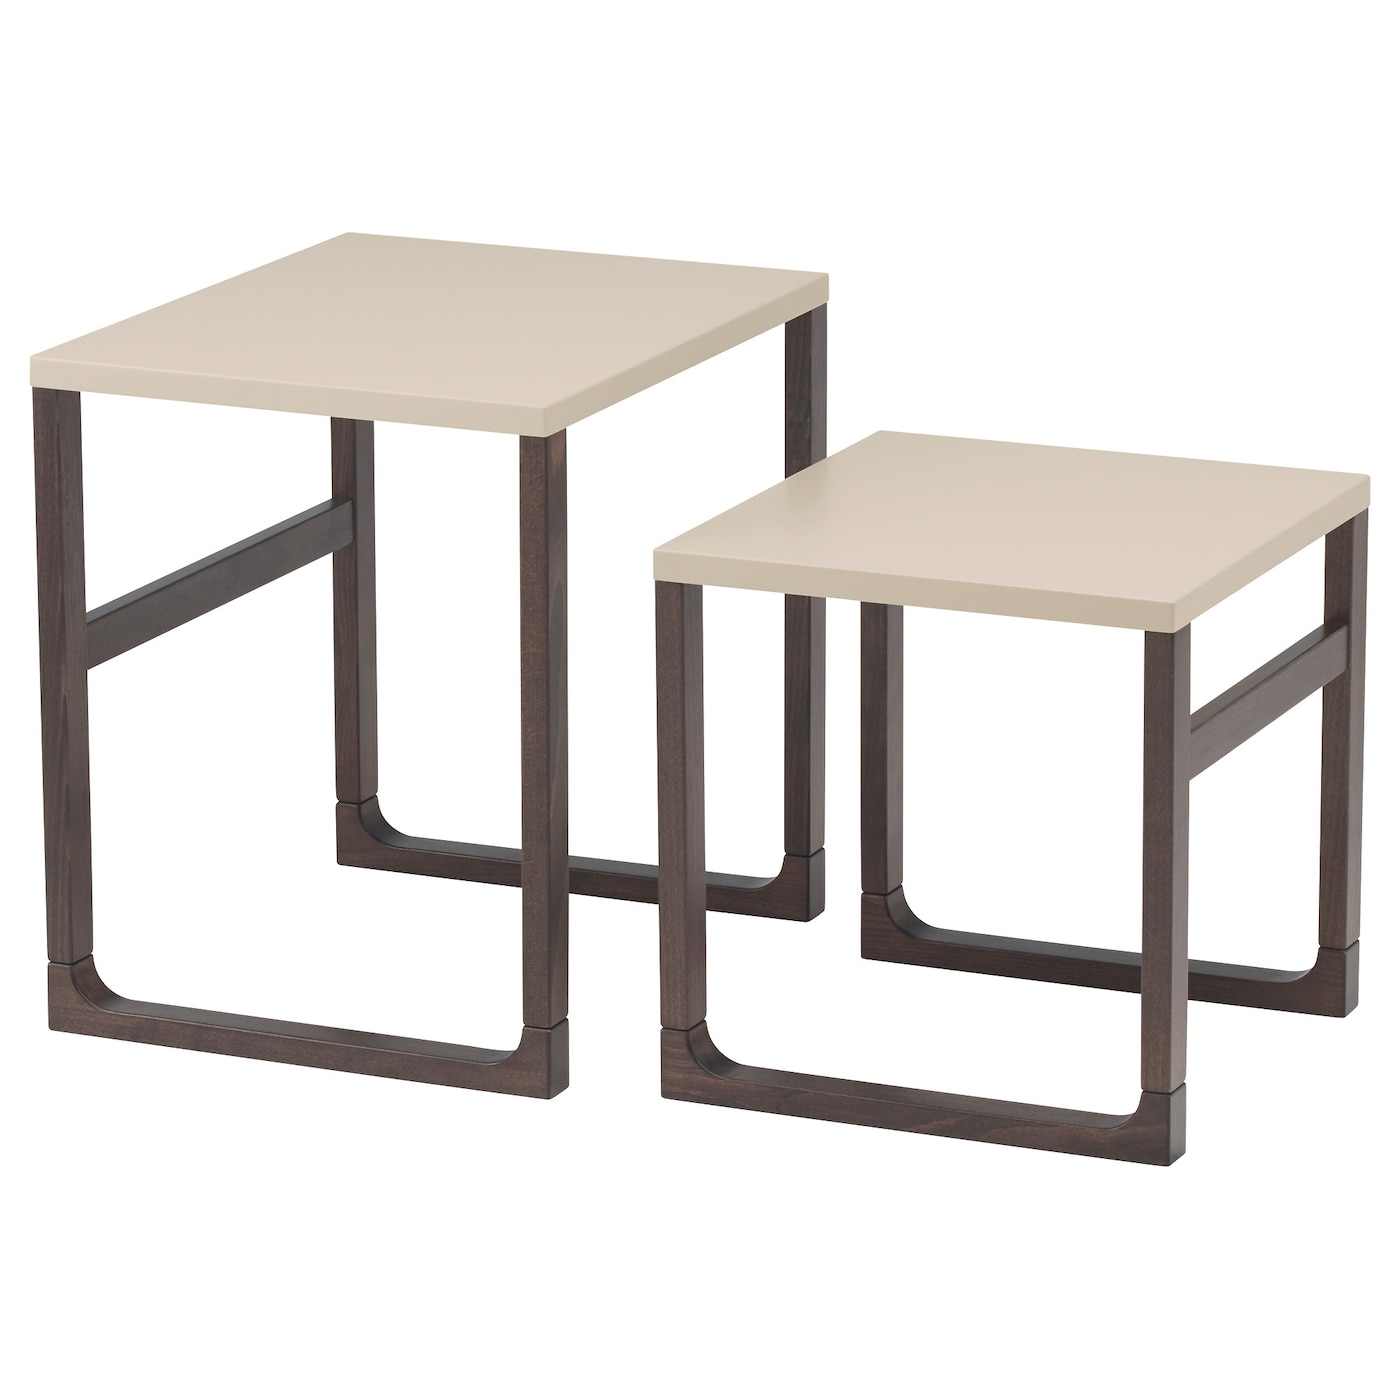 rissna nest of tables set of 2 beige ikea. Black Bedroom Furniture Sets. Home Design Ideas